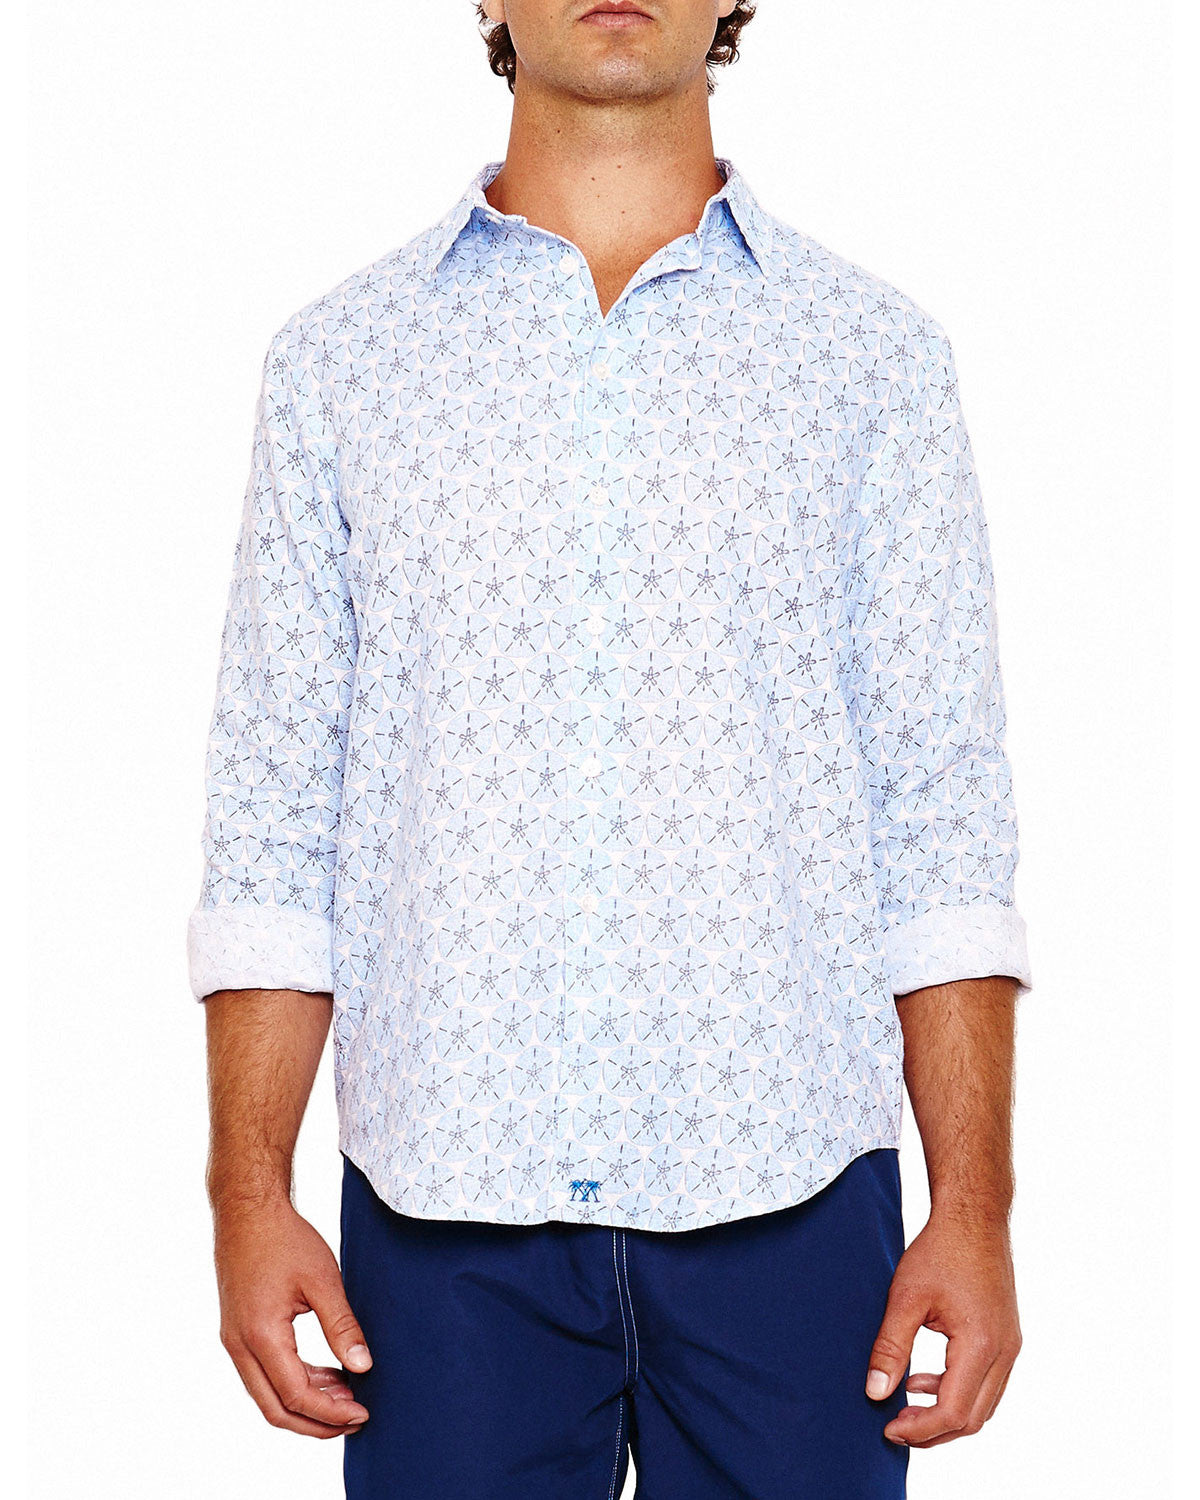 Mens Linen Shirt (Sand Dollar Blue) Front